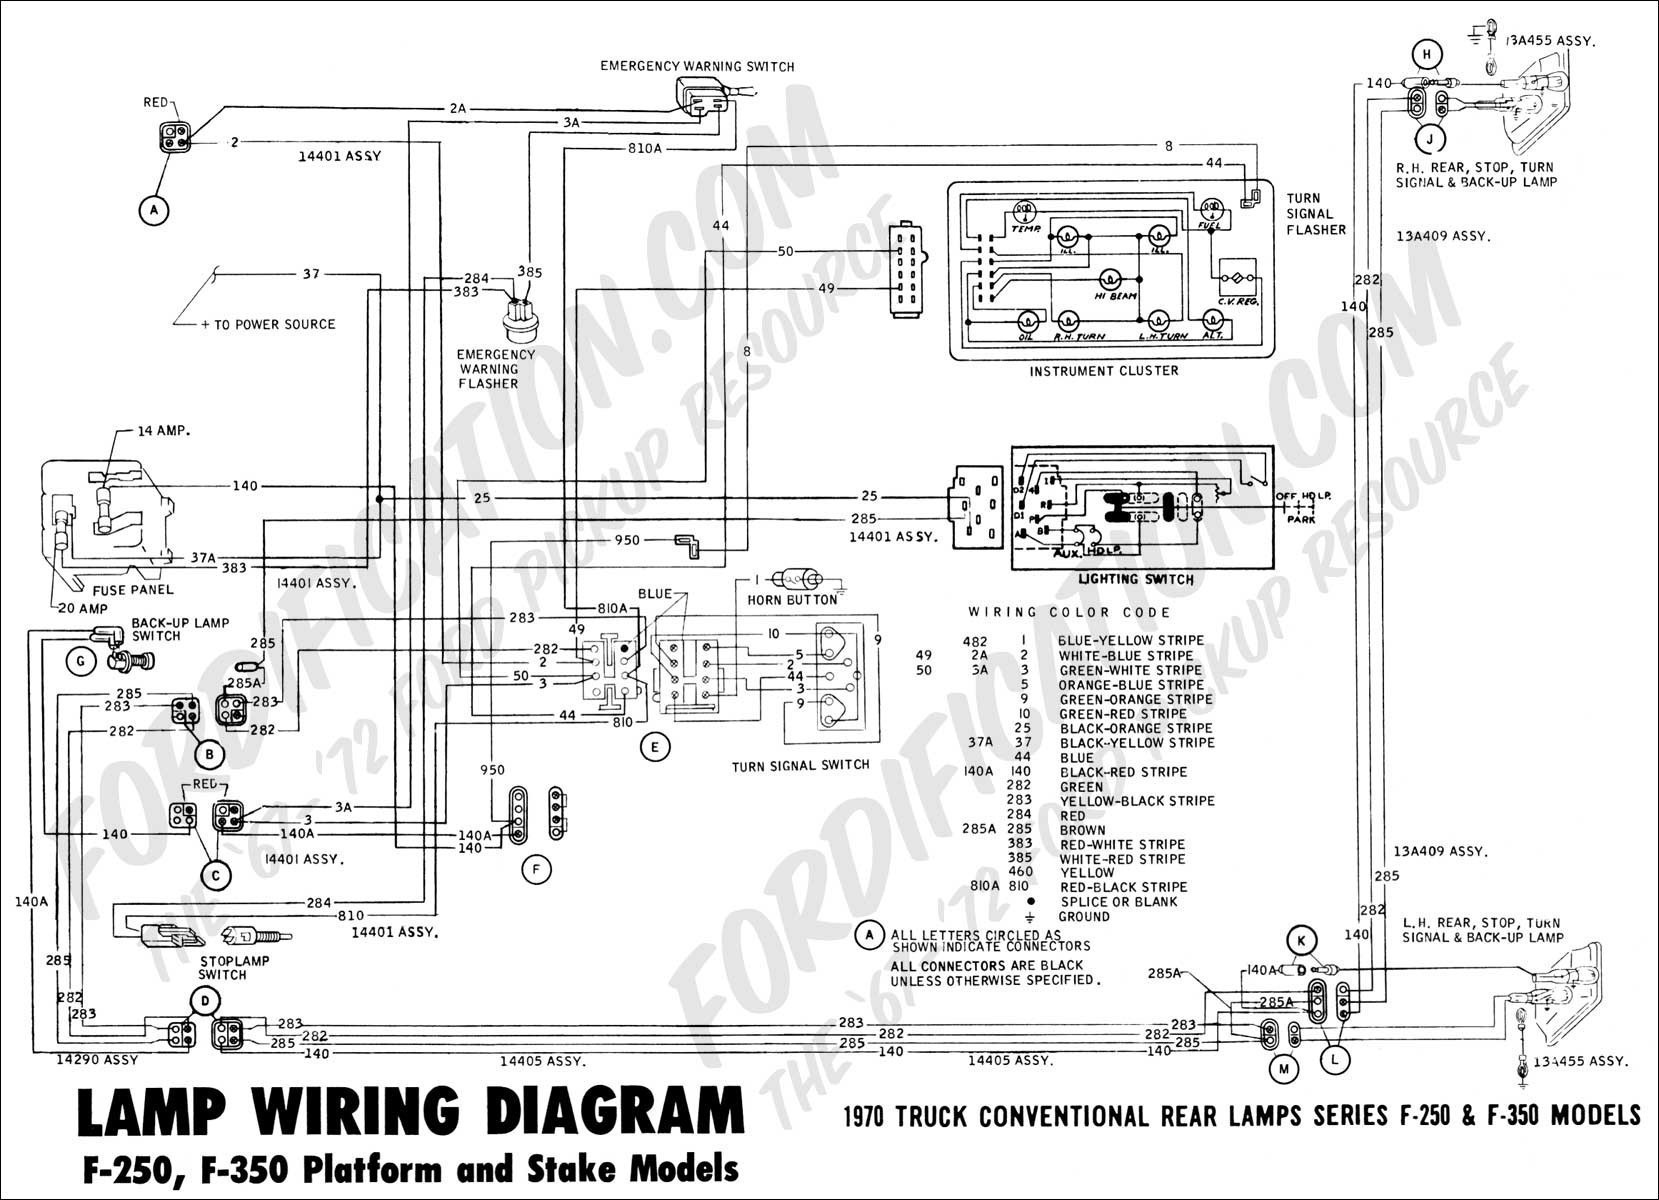 1994 ford f150 wiring diagram fresh f150 tail light wiring diagram rh  callingallquestions 1157 Socket